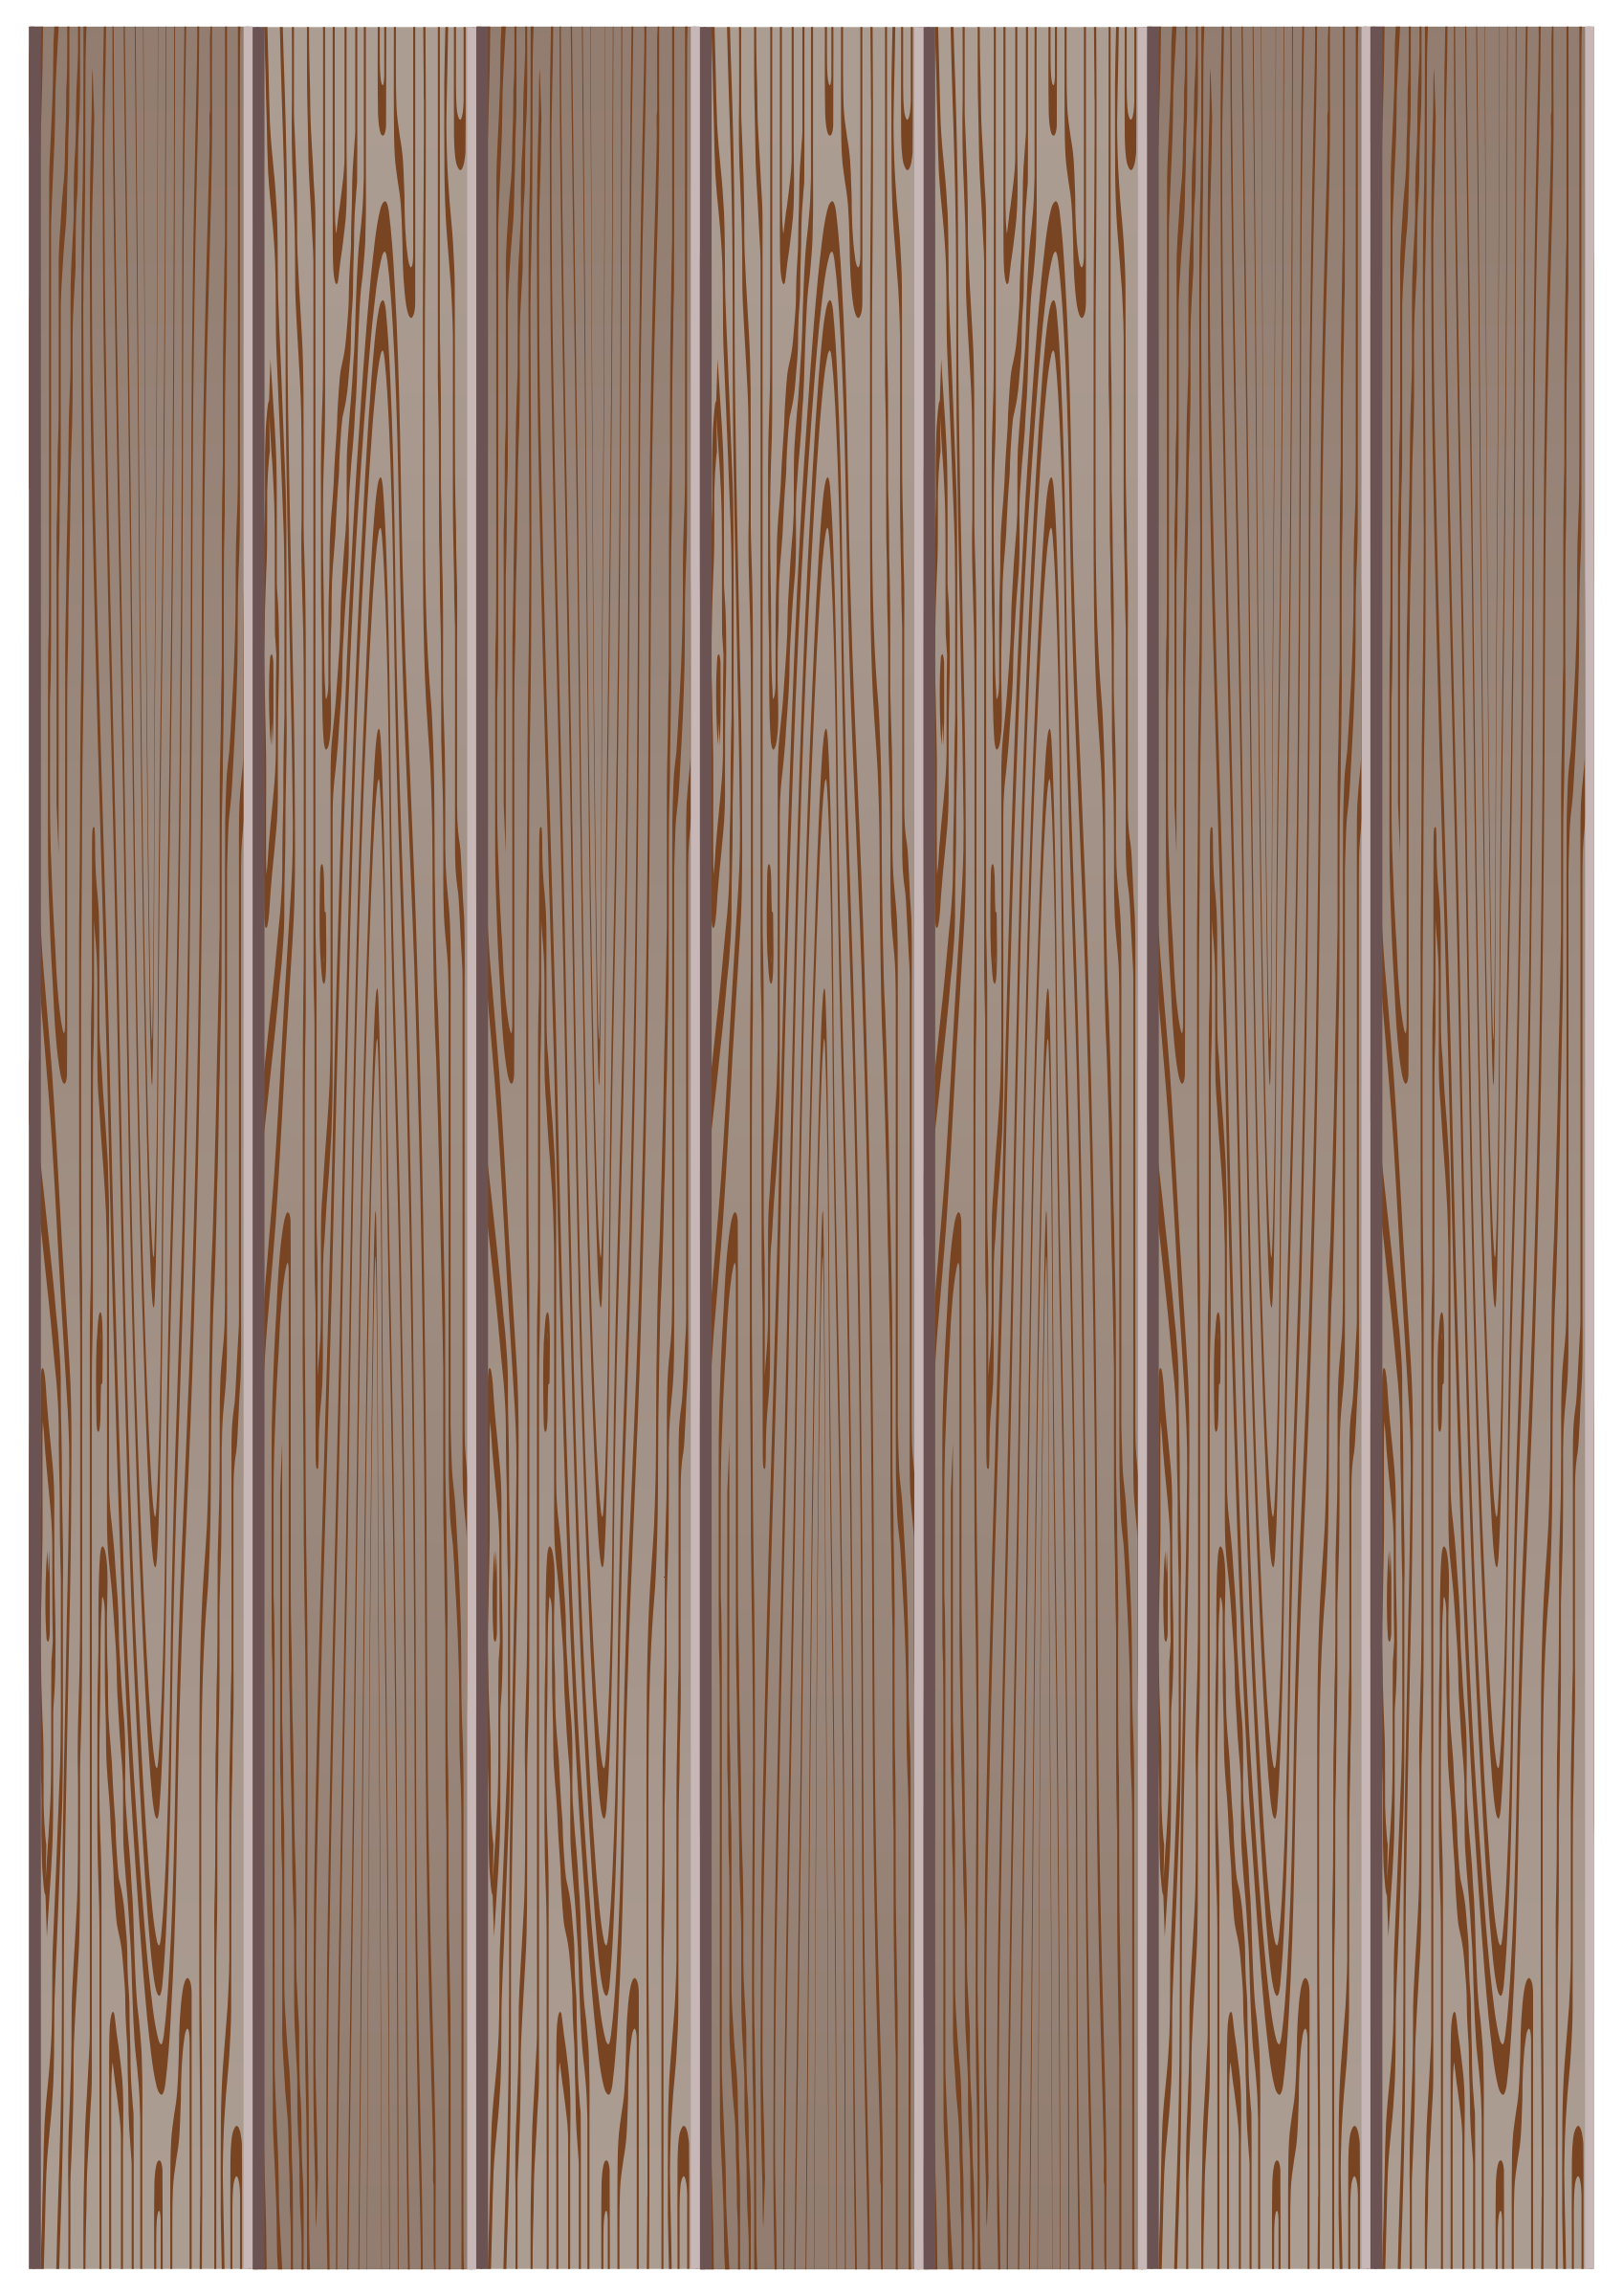 Wood board 3 by Almeidah